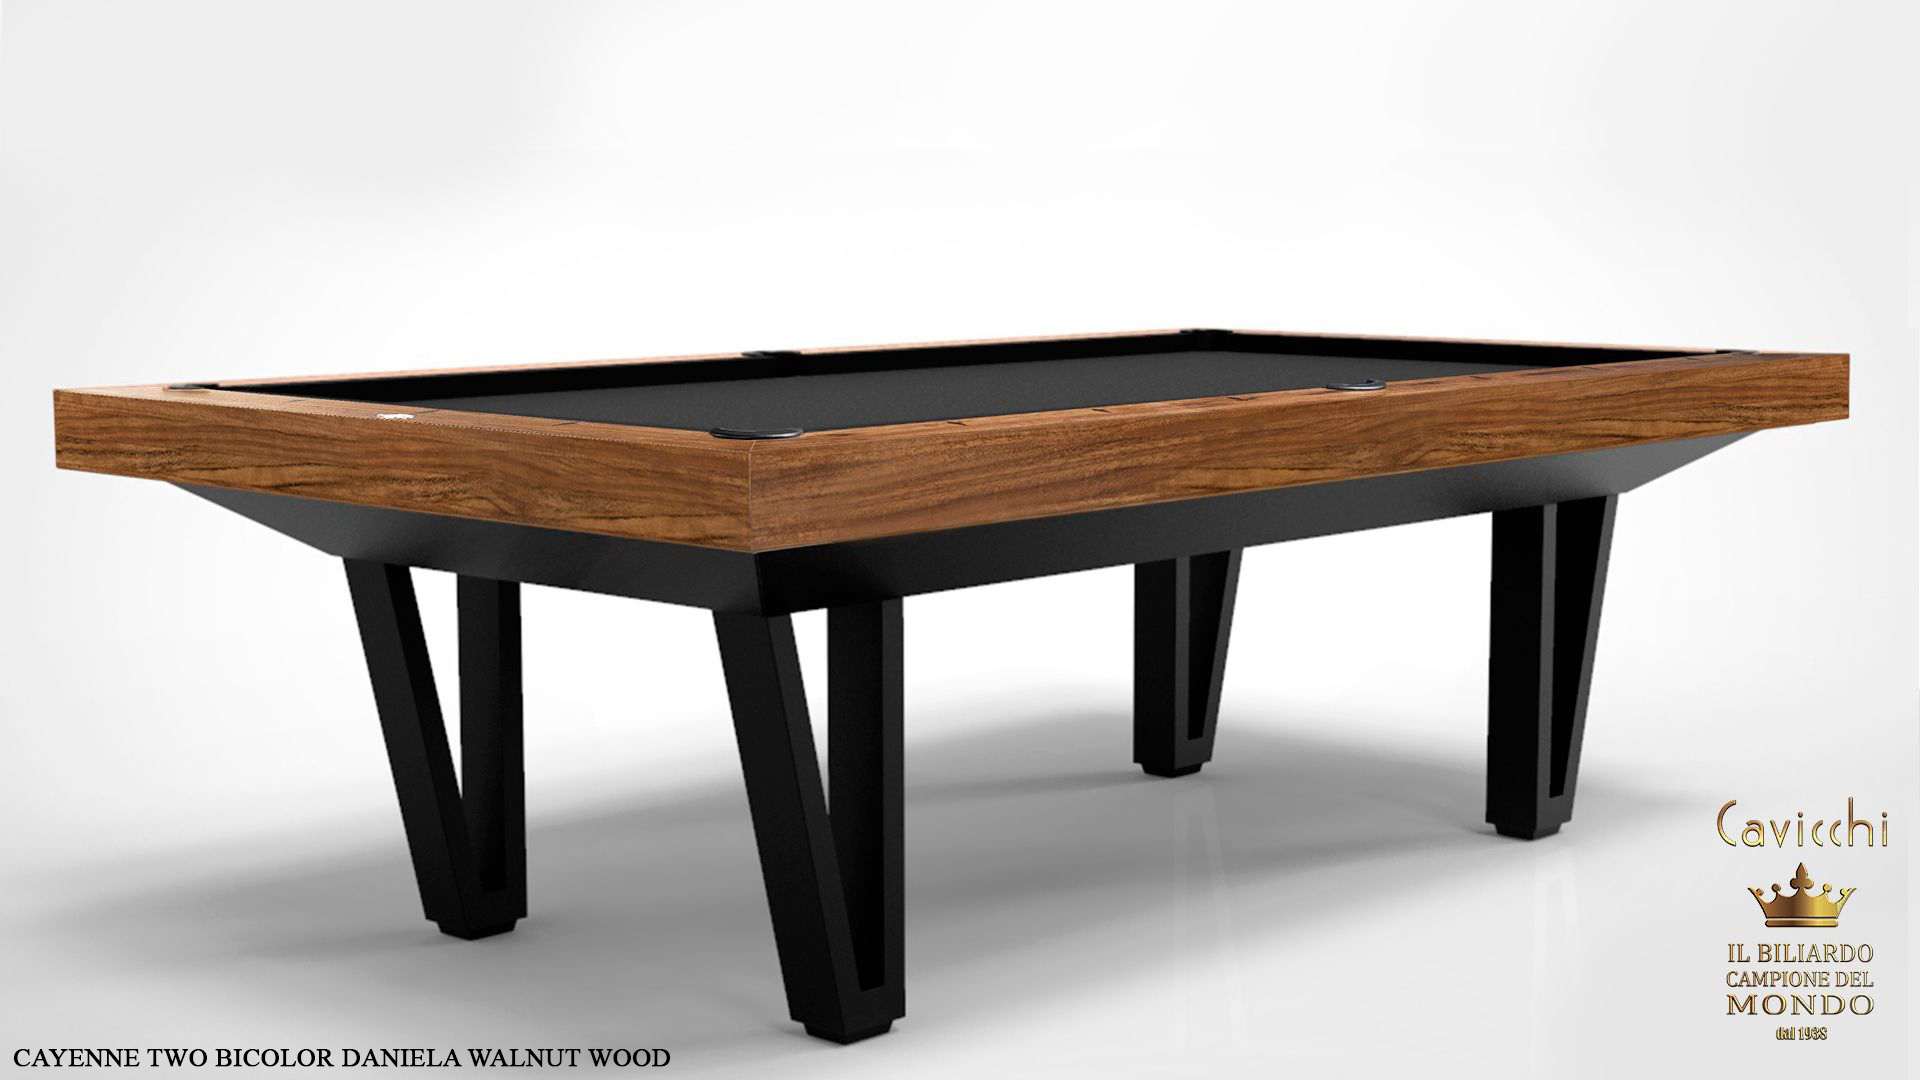 Pool Table Mod. Cayenne Two Bicolor Version 7